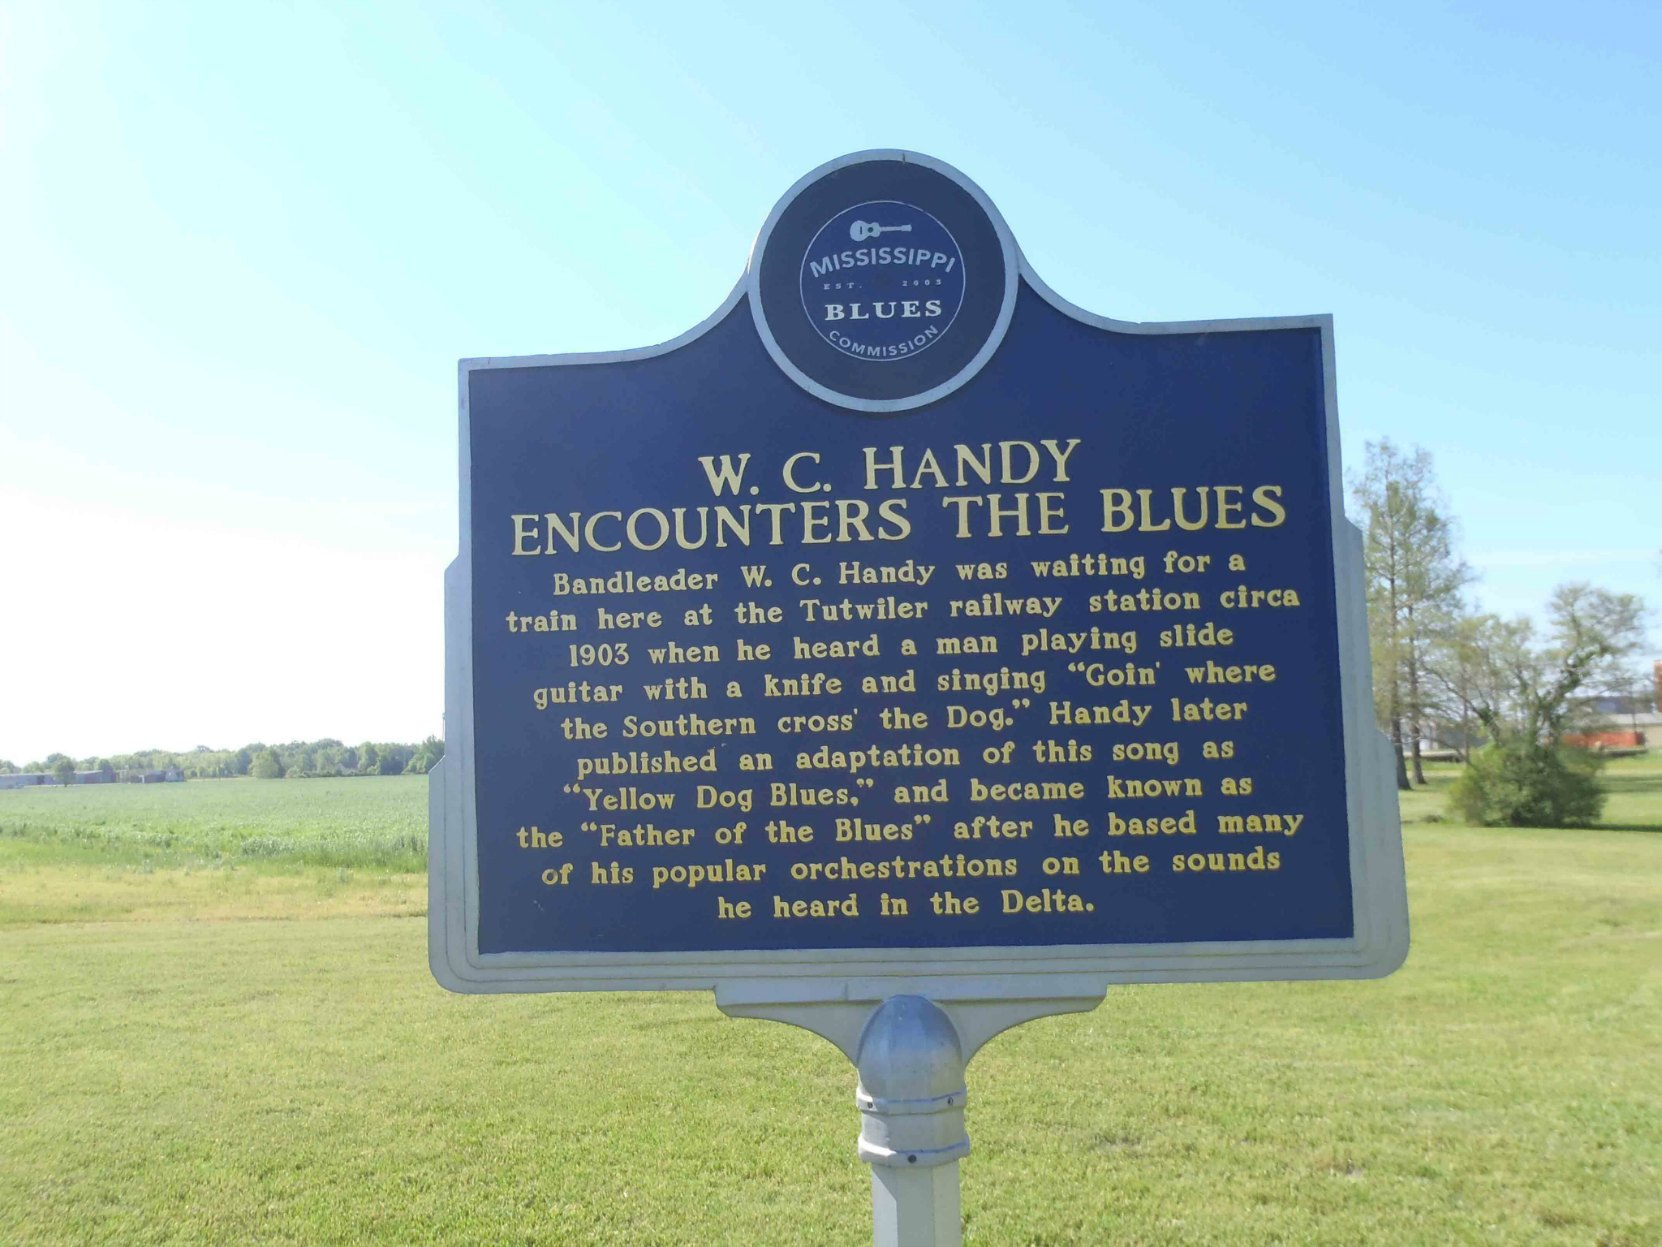 Mississippi Blues Trail marker, W.C. Handy Encounters The Blues, Tutwiler, Mississippi